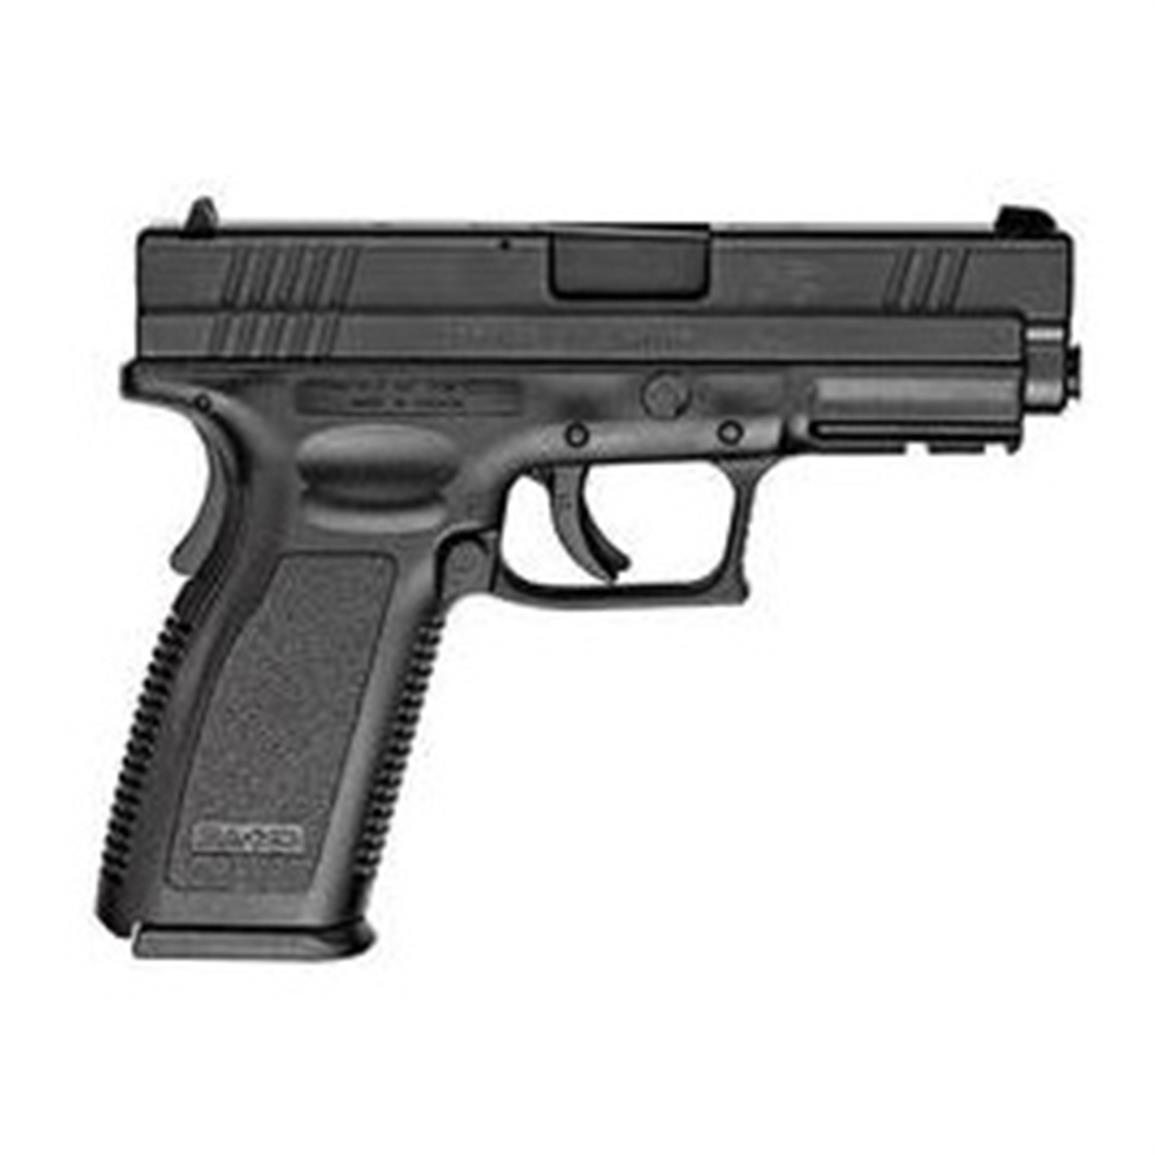 Springfield XD Service, Semi-automatic, 9mm, XD9101SP06, 706397865757